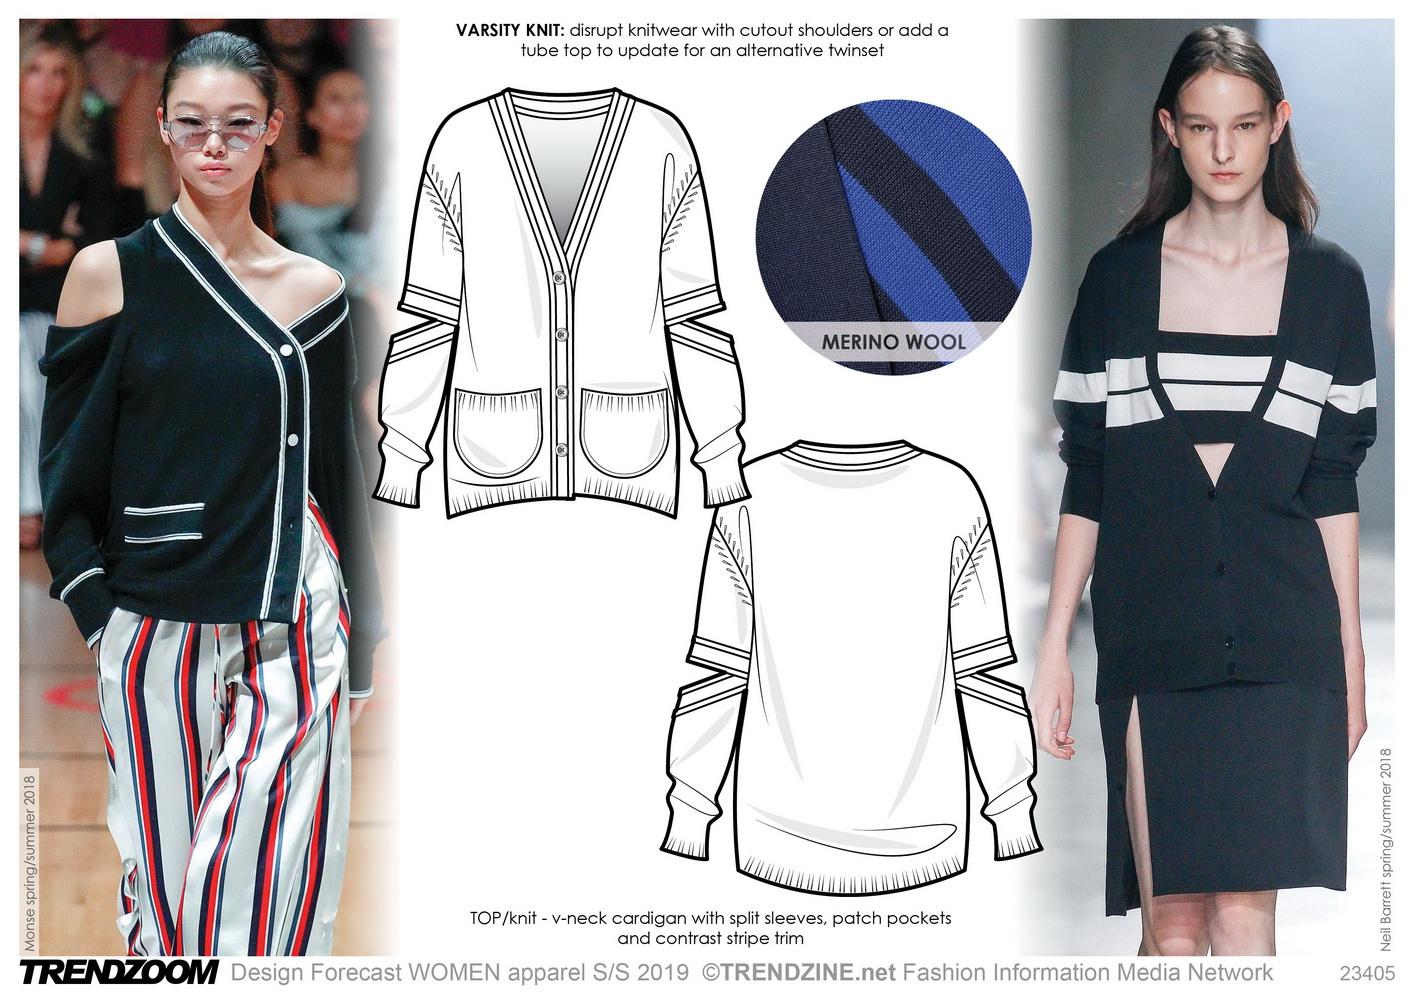 Trendzoom Design Forecast Women Youth Apparel S S 2019 Trends